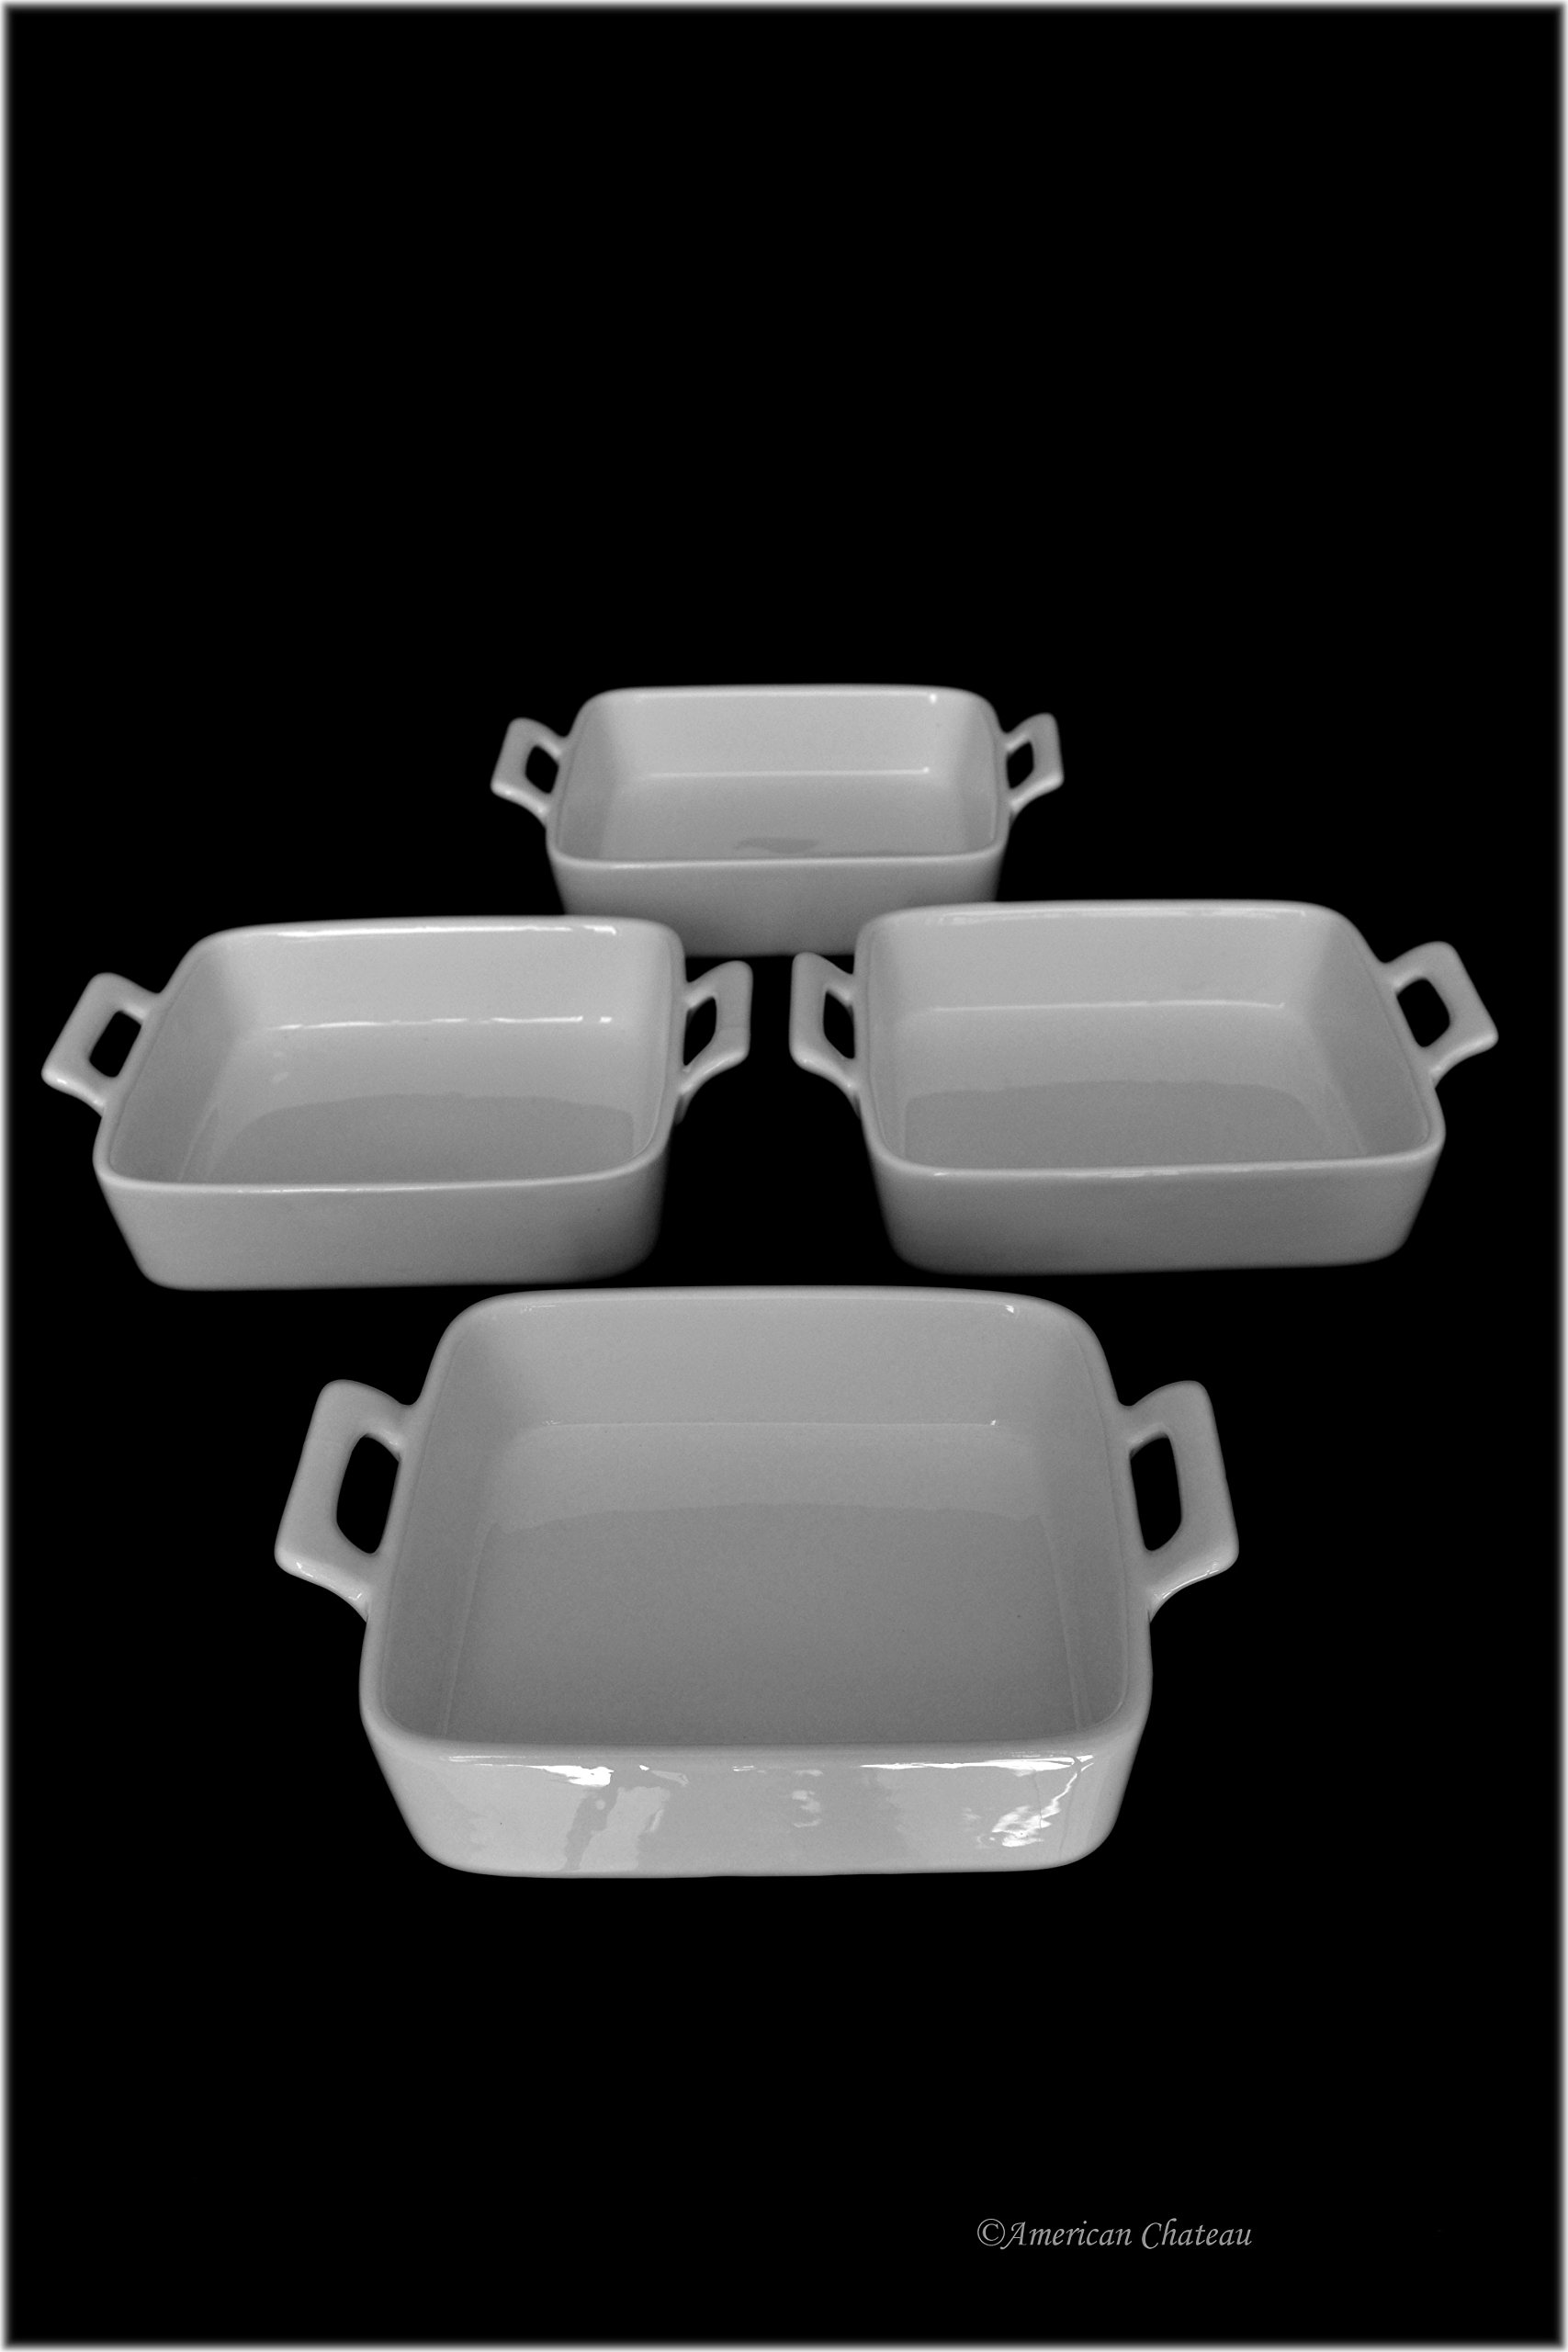 Set 4 Square Oven-Safe White Porcelain Casserole Au Gratin Dishes with Handles